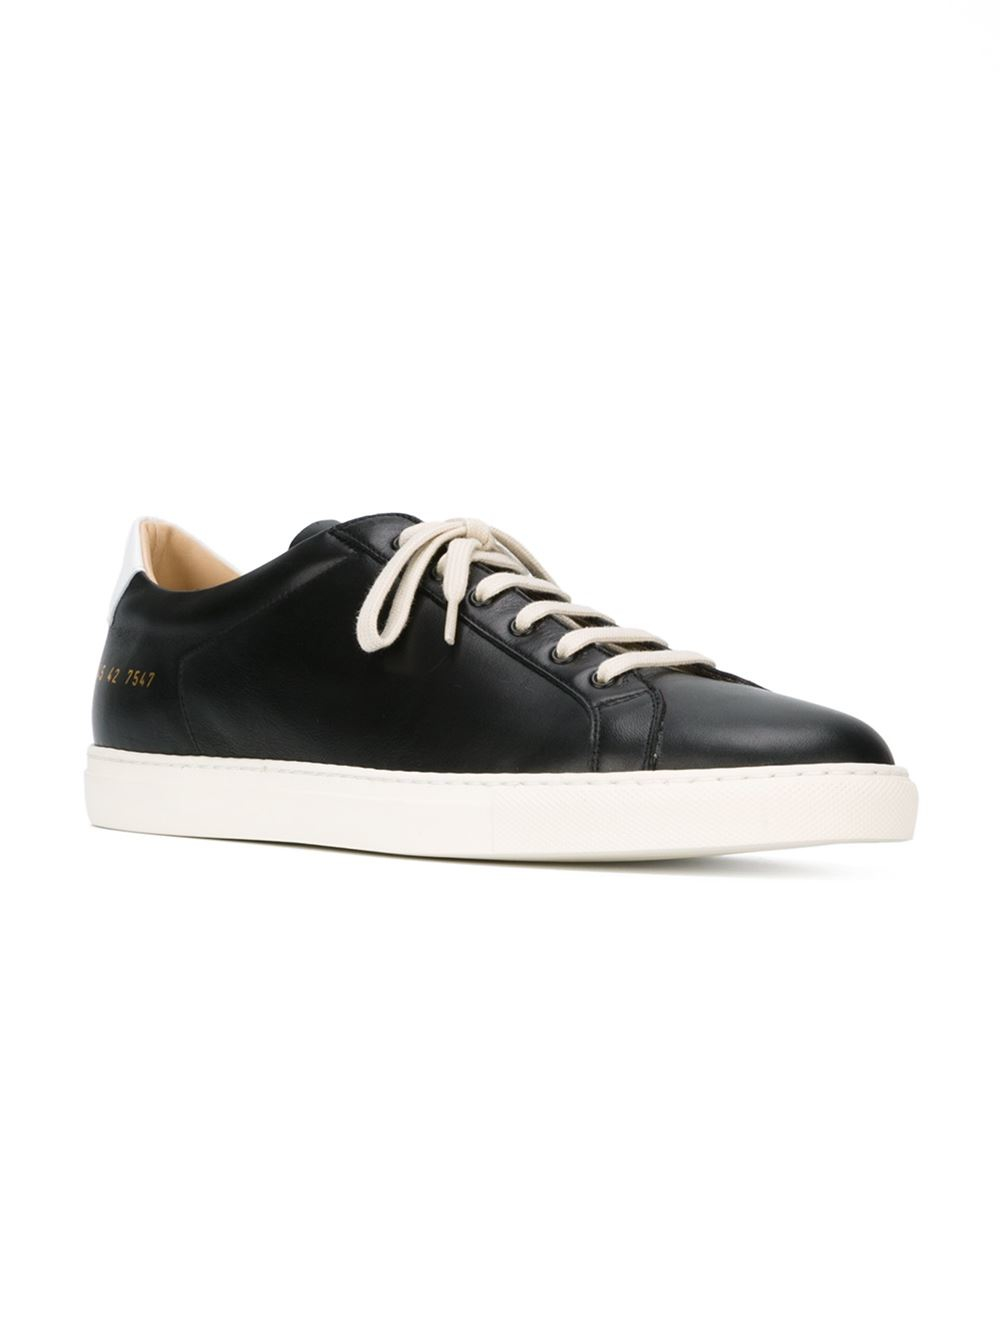 common project shoes Find great deals on ebay for common projects in athletic shoes for men shop with confidence.